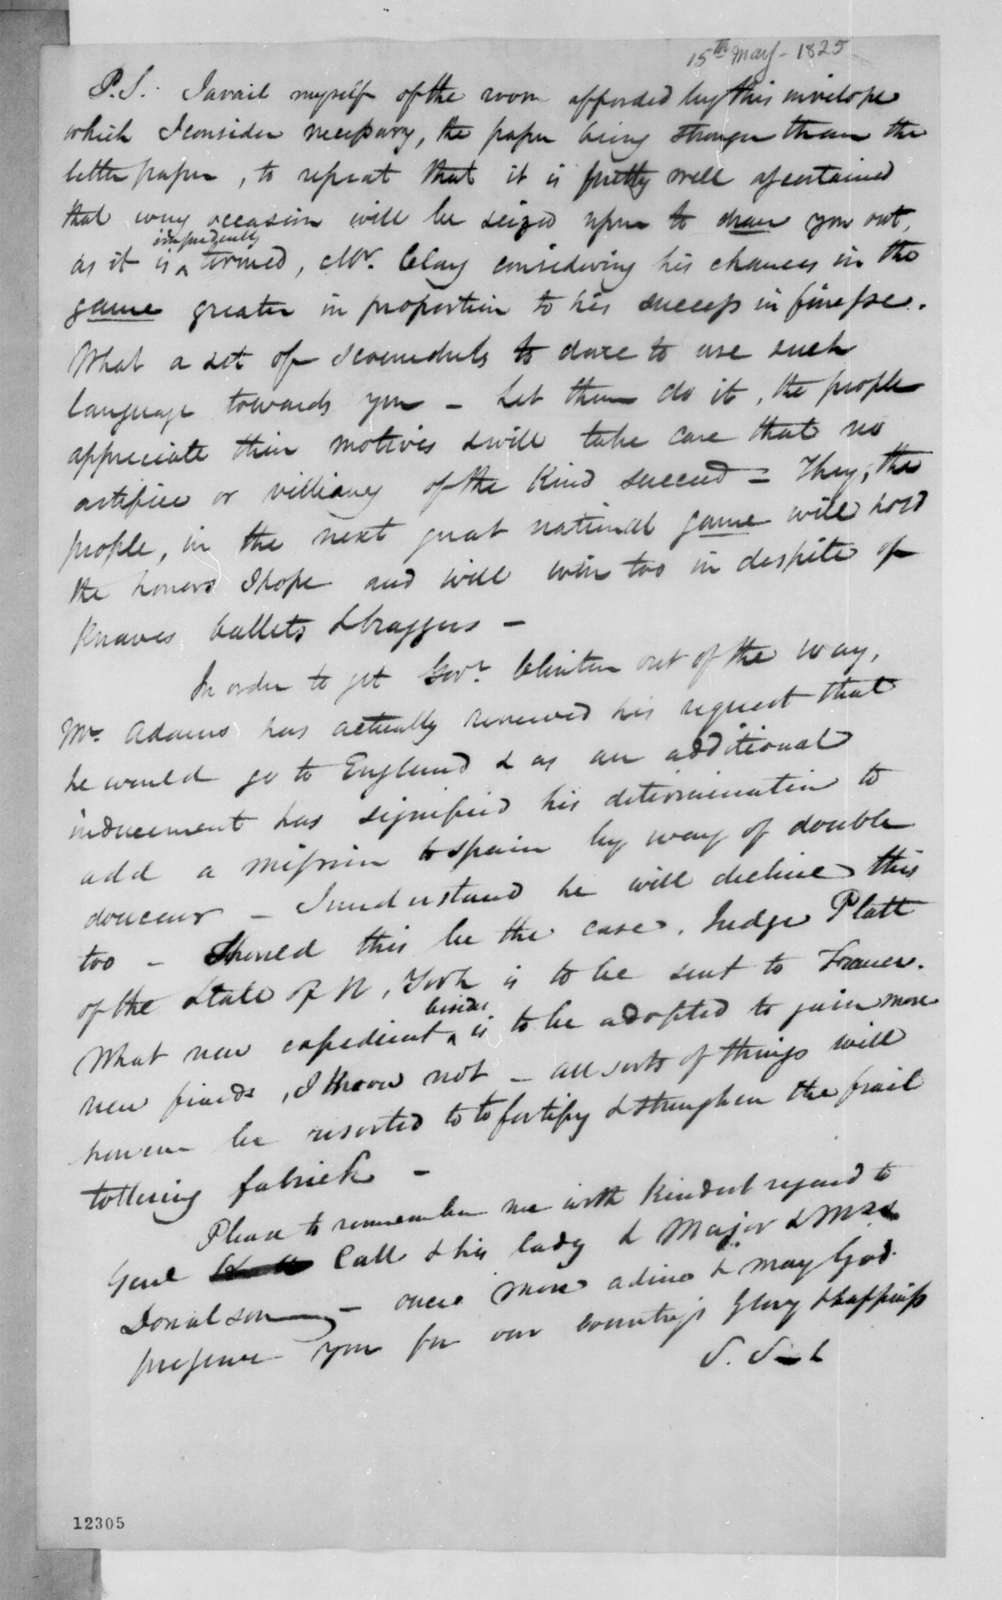 Samuel Swartwout to Andrew Jackson, May 15, 1825